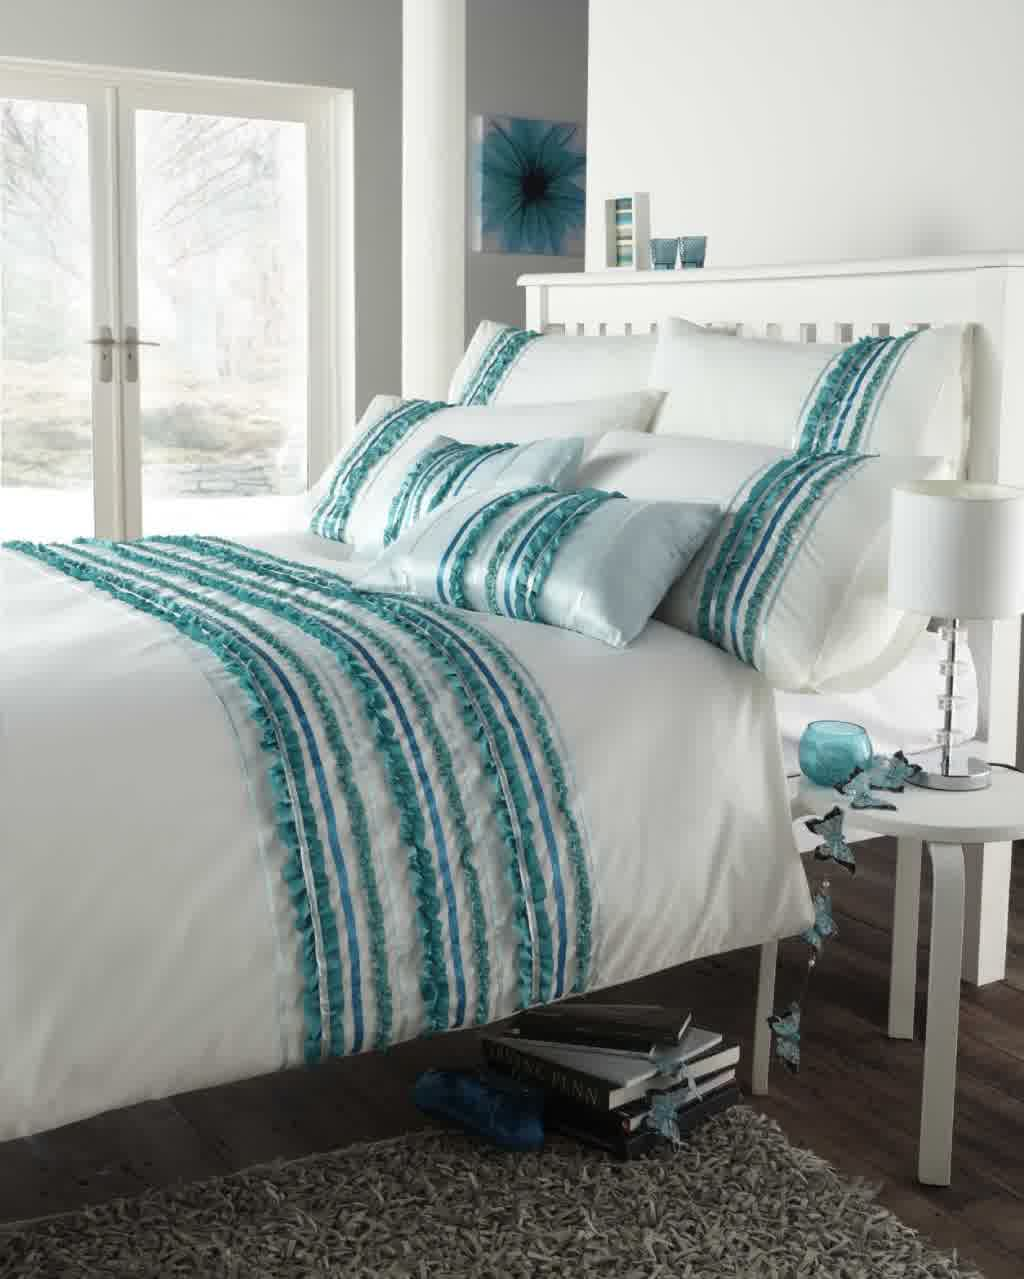 Bedding sets turquoise - White Bedding Set With Turquoise Strips Decoration In Standard Size Bed With White Wood Headboard Gray